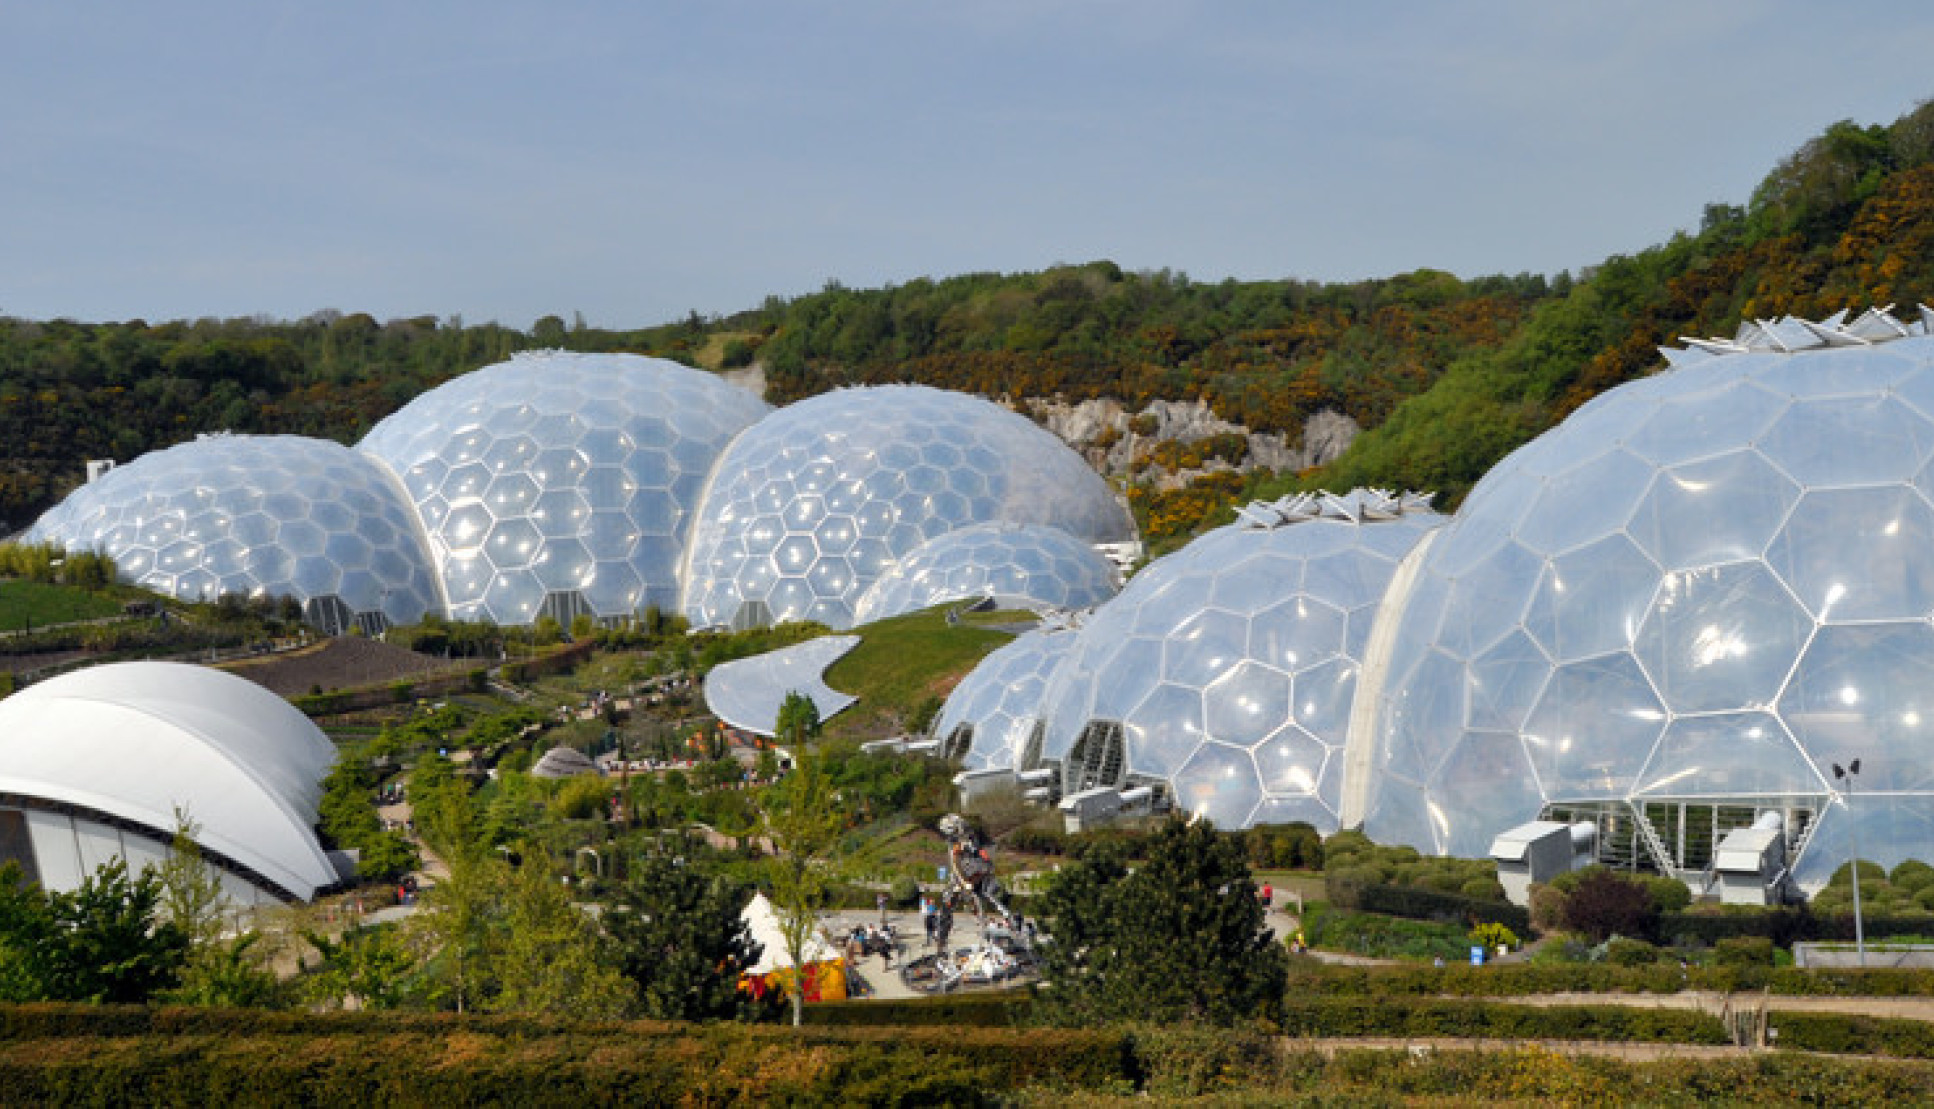 Photo of the domes of the Eden Project